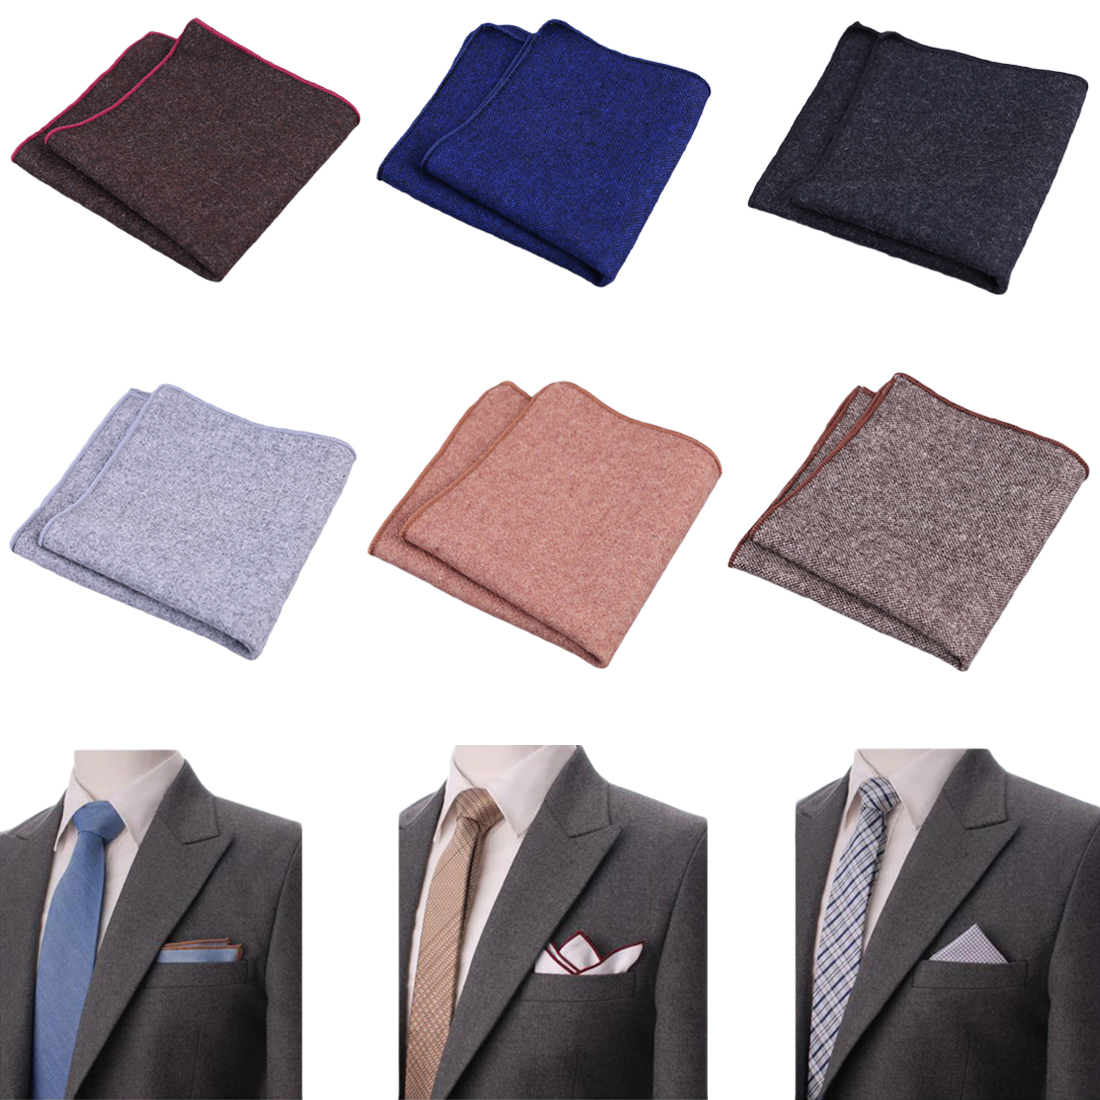 New Bundles High Quality Hankerchief Scarves Vintage Wool Hankies Men's Pocket Square Handkerchiefs Striped Solid Cotton 23*23cm